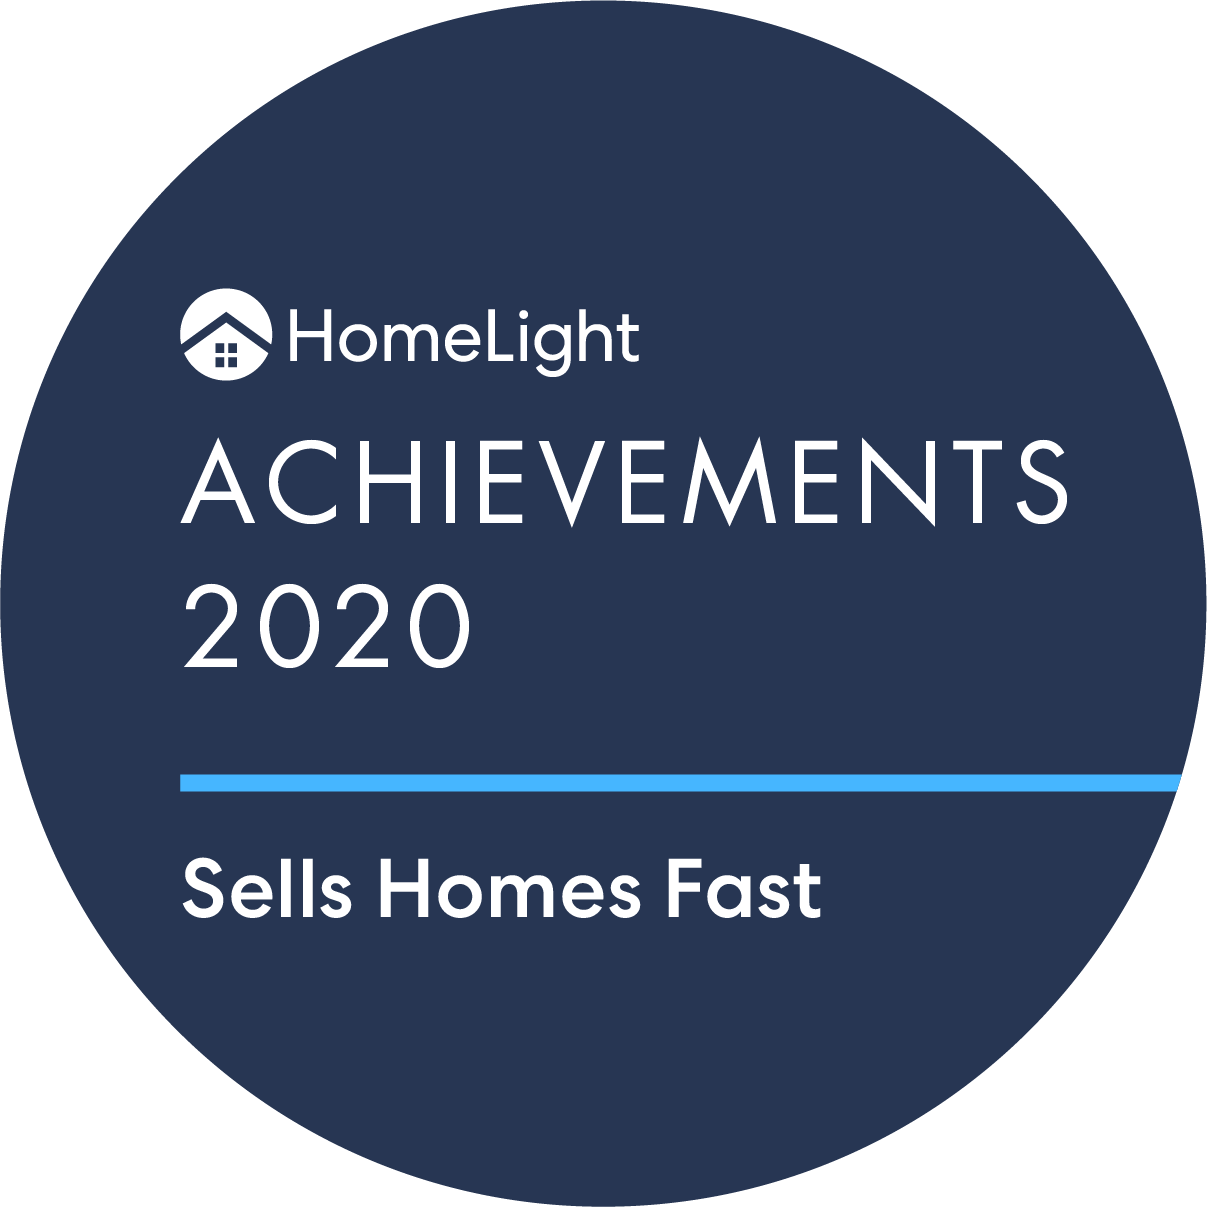 HomeLight Achievement Winner - THE MADRONA GROUP Real Estate Team - Top Washington Real Estate Agent